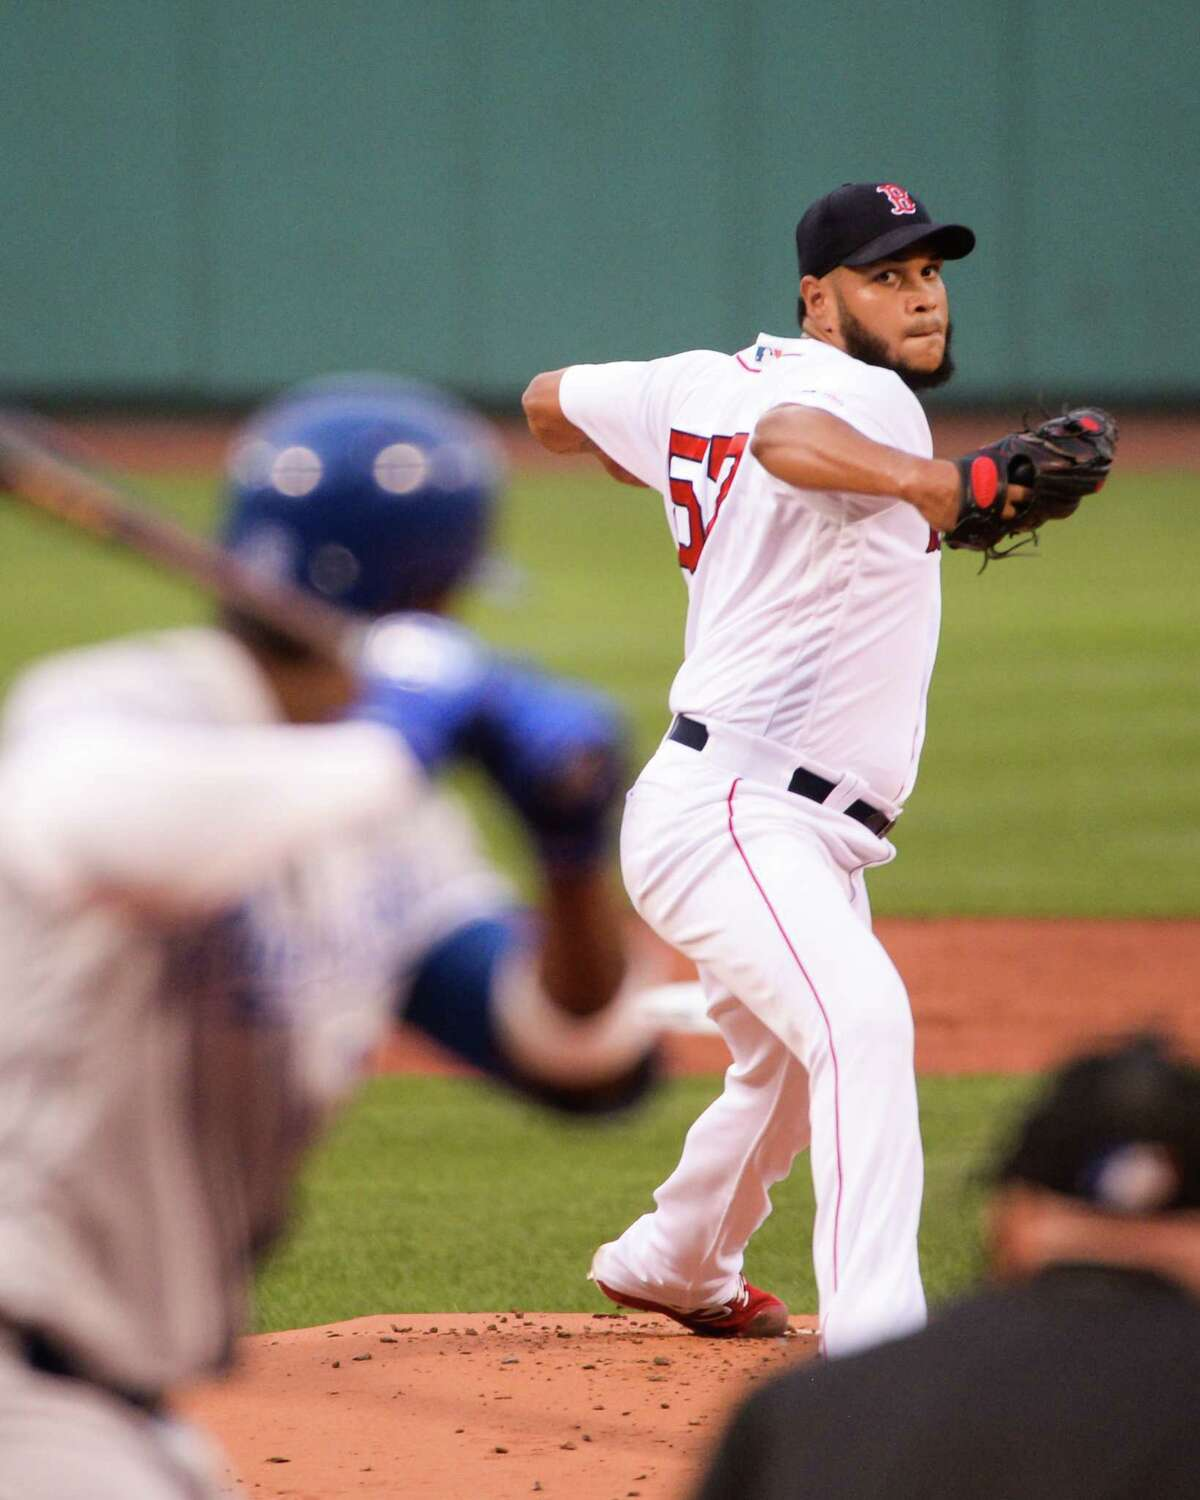 BOSTON, MA - AUGUST 7: Eduardo Rodriguez #57 of the Boston Red Sox pitches in the first inning against the Kansas City Royals at Fenway Park on August 7, 2019 in Boston, Massachusetts. (Photo by Kathryn Riley/Getty Images)